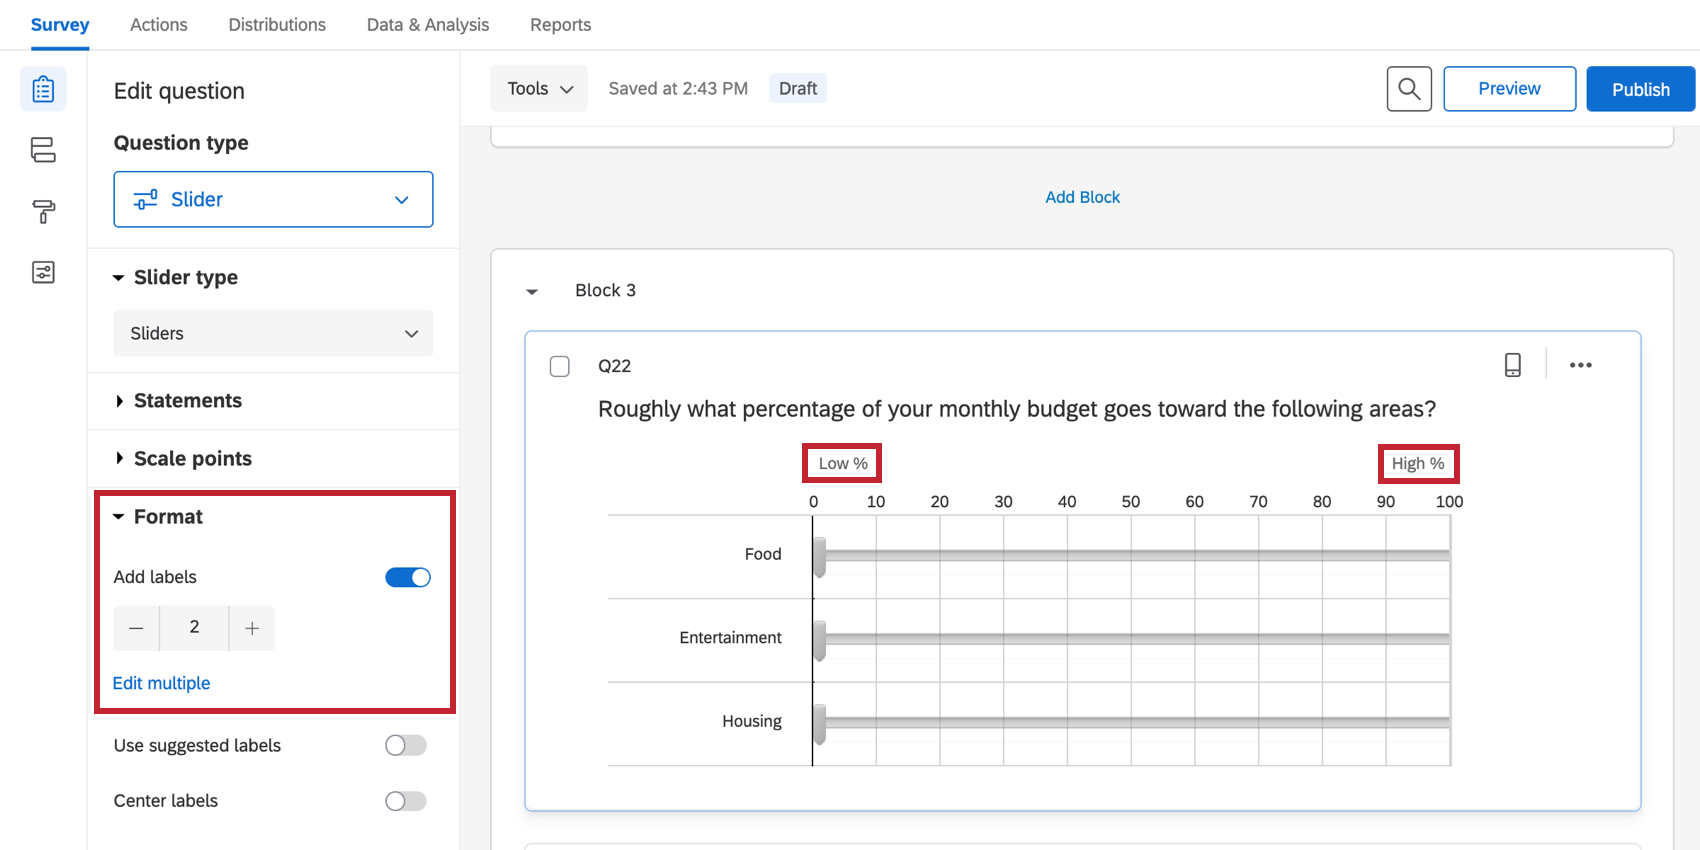 Labels is set to 2, so 2 labels appear over the slider bars, on either end